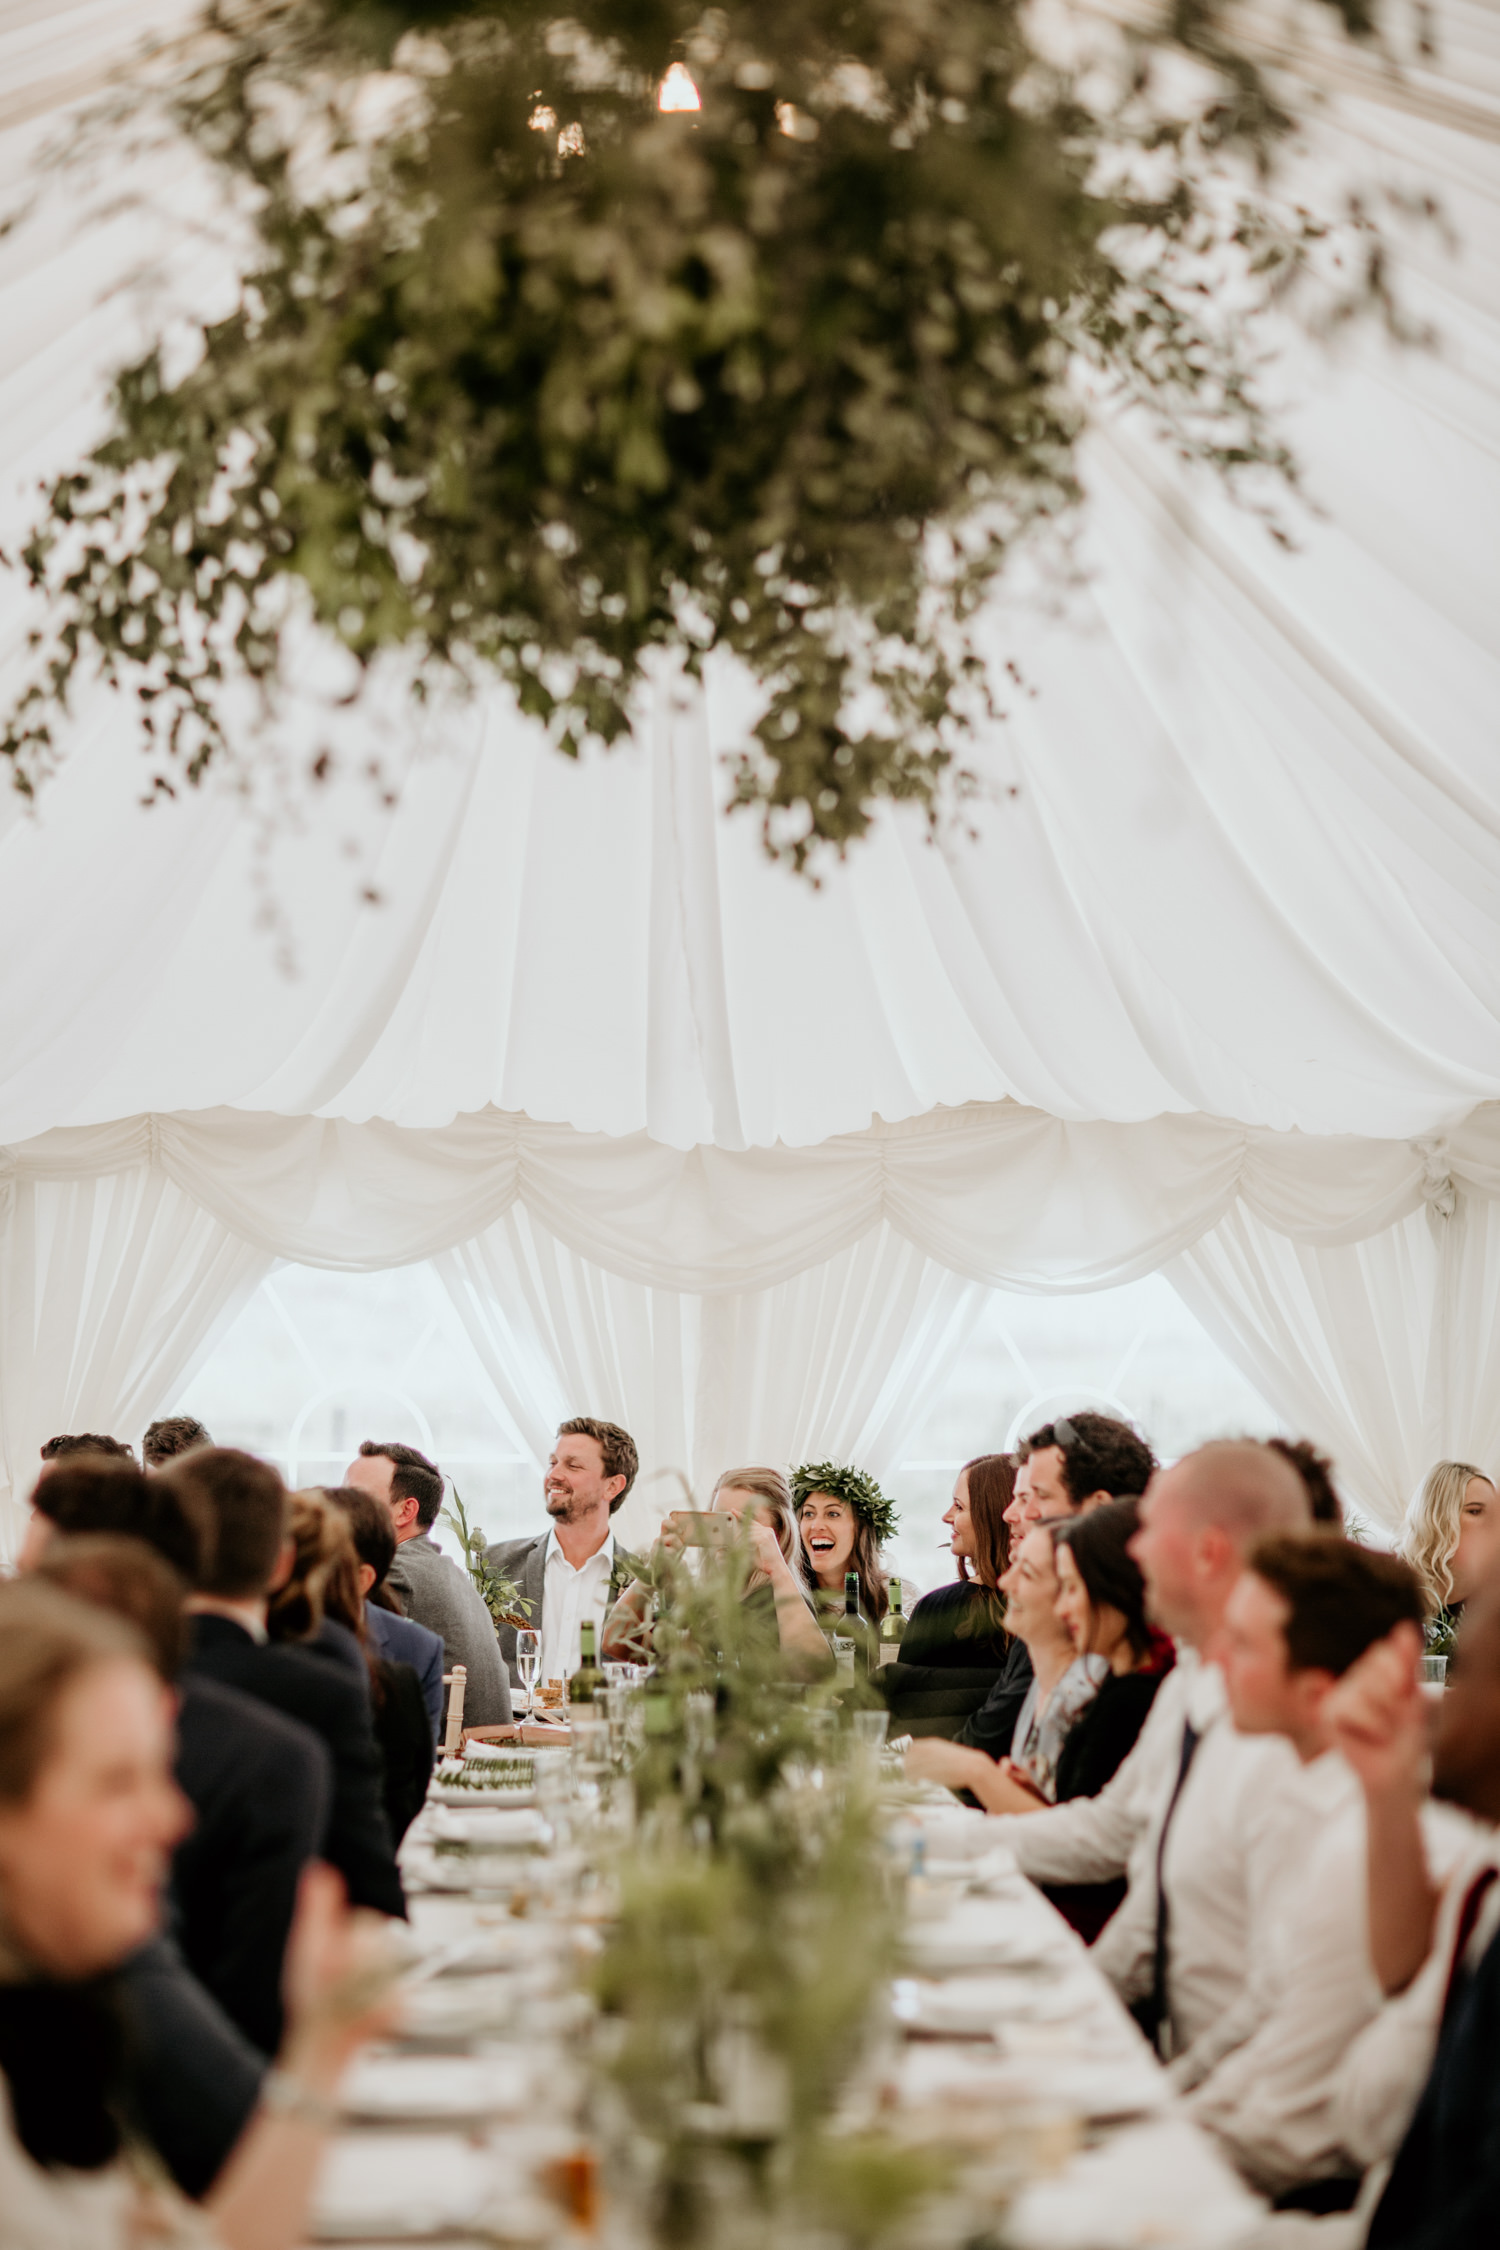 marquee setup and guests sitting at long tables during a Harvest Moon Scotland wedding